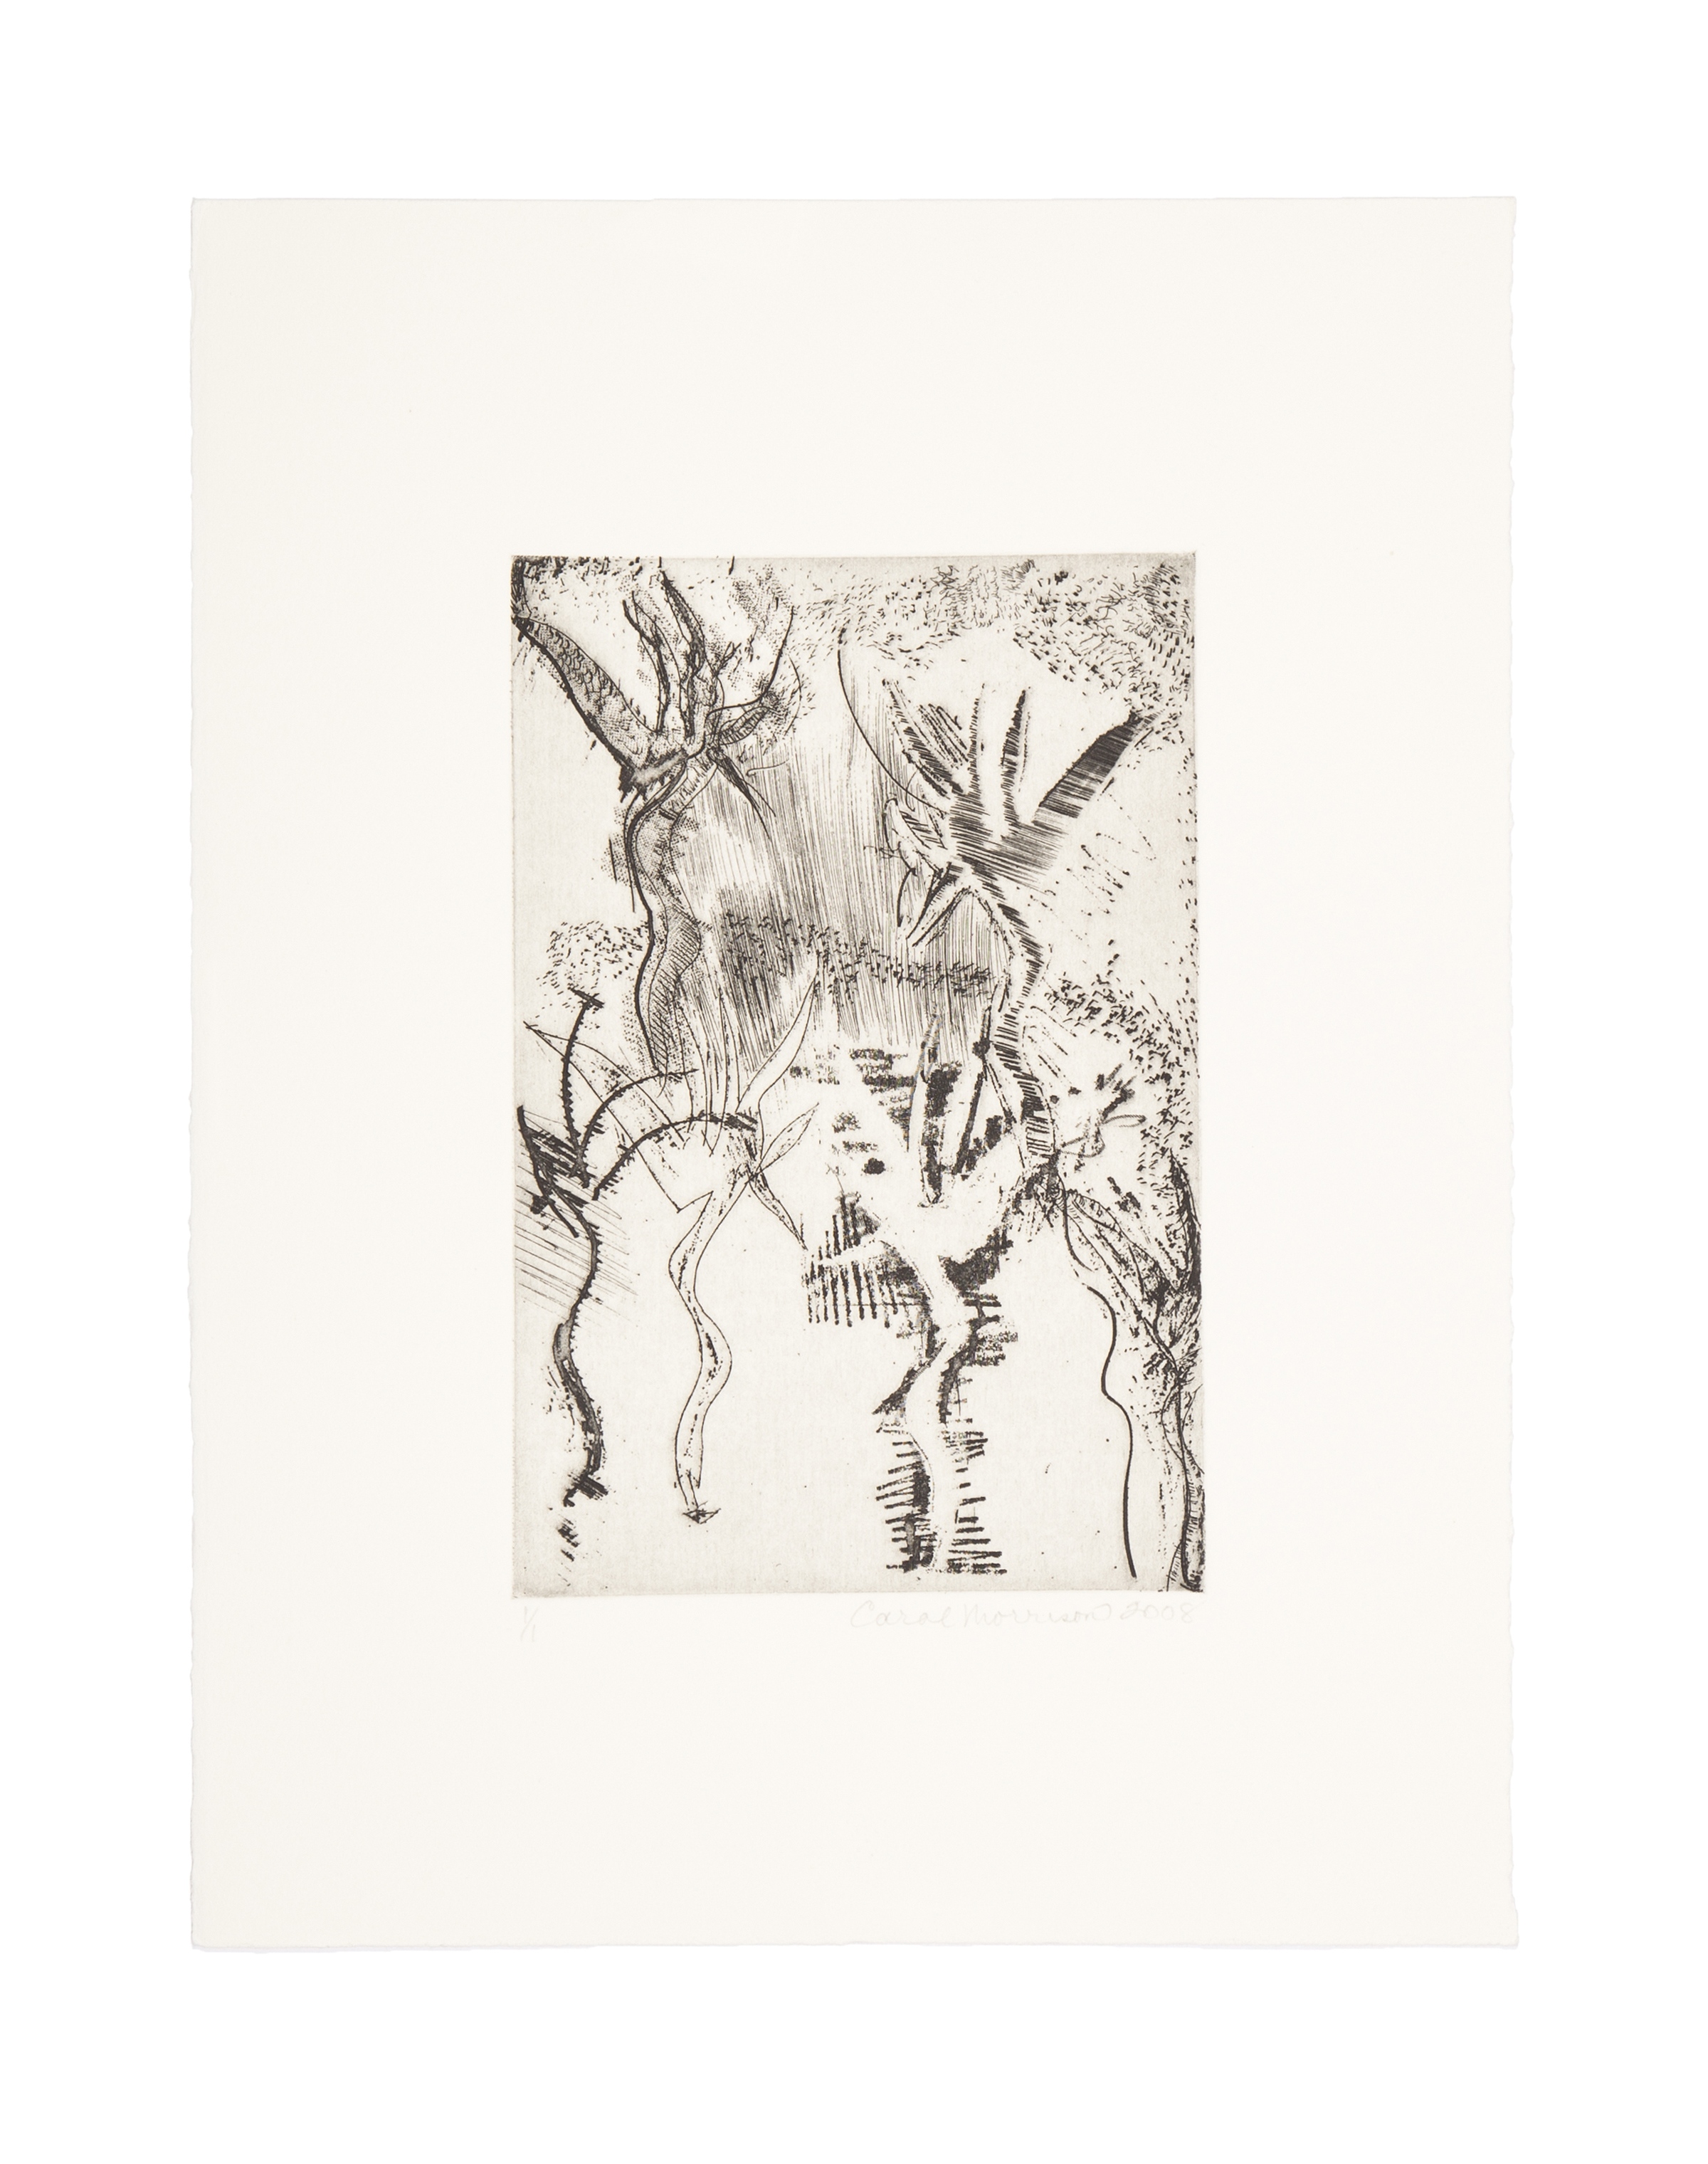 THE NYMPHS  Intaglio  Image: 5.85 x 8.9 inches  Paper: 11.25 x 15 inches  Printed by 10 Grand Press  © 2008 Carol Morrison